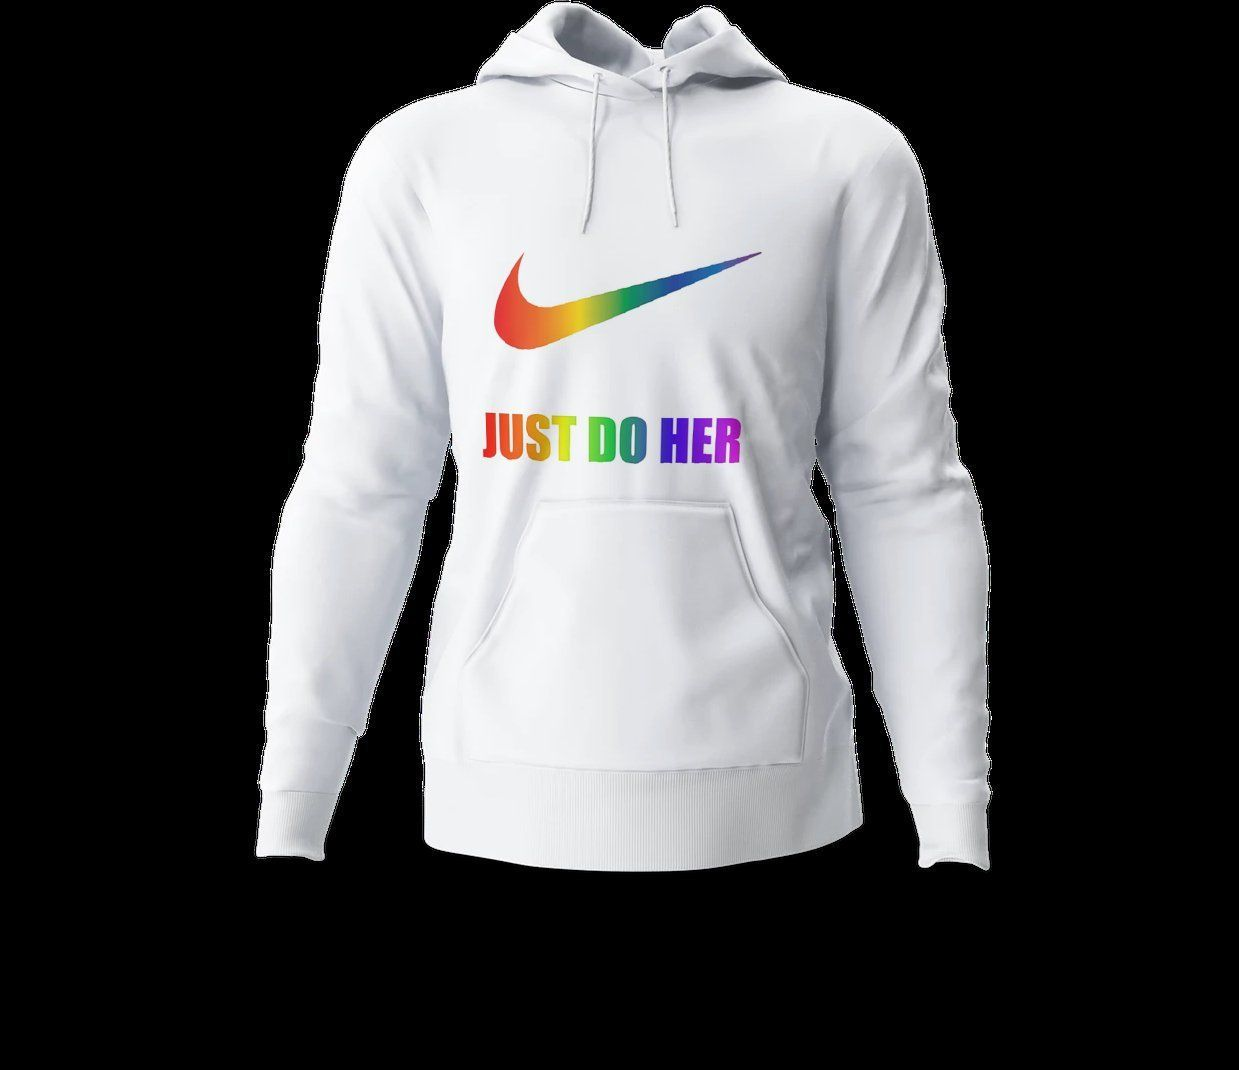 cd0db397 Nike inspired Rainbow Just Do funny LGBTQ sweat shirt gift for her lesbians  will love gay pride shirt by customeit on Etsy